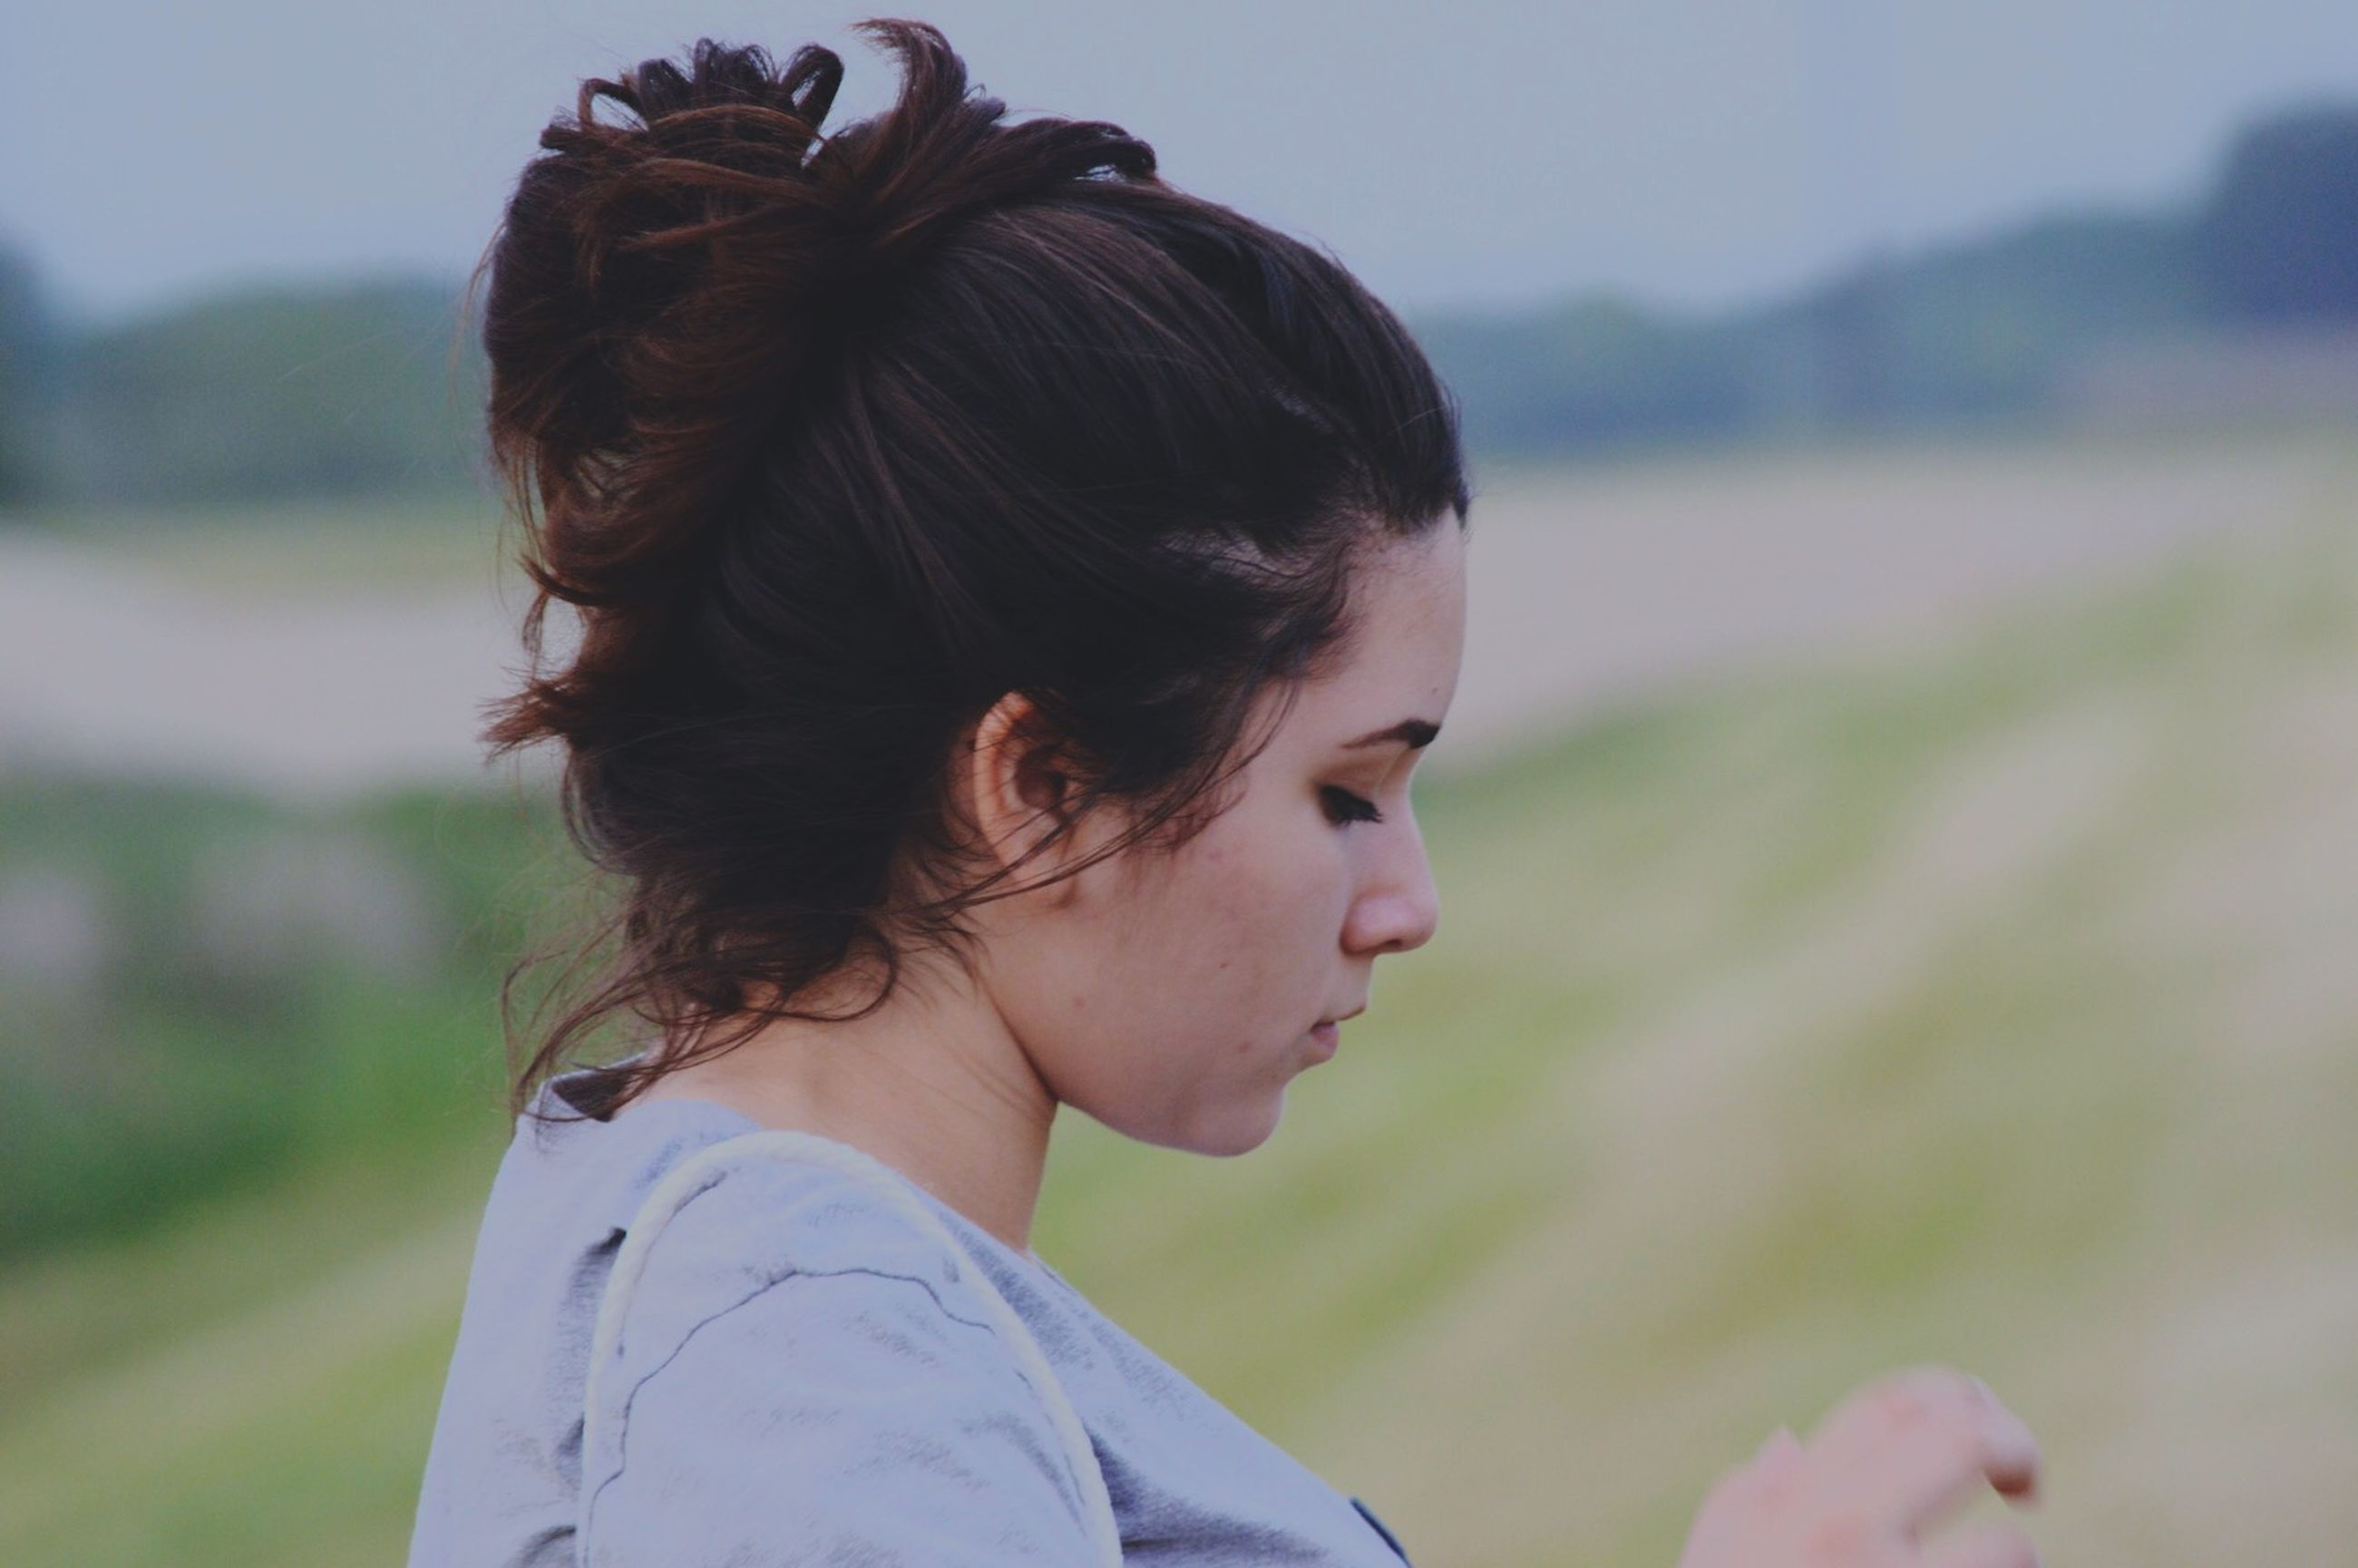 focus on foreground, lifestyles, headshot, leisure activity, long hair, person, young adult, brown hair, young women, casual clothing, close-up, waist up, rear view, head and shoulders, side view, blond hair, outdoors, looking away